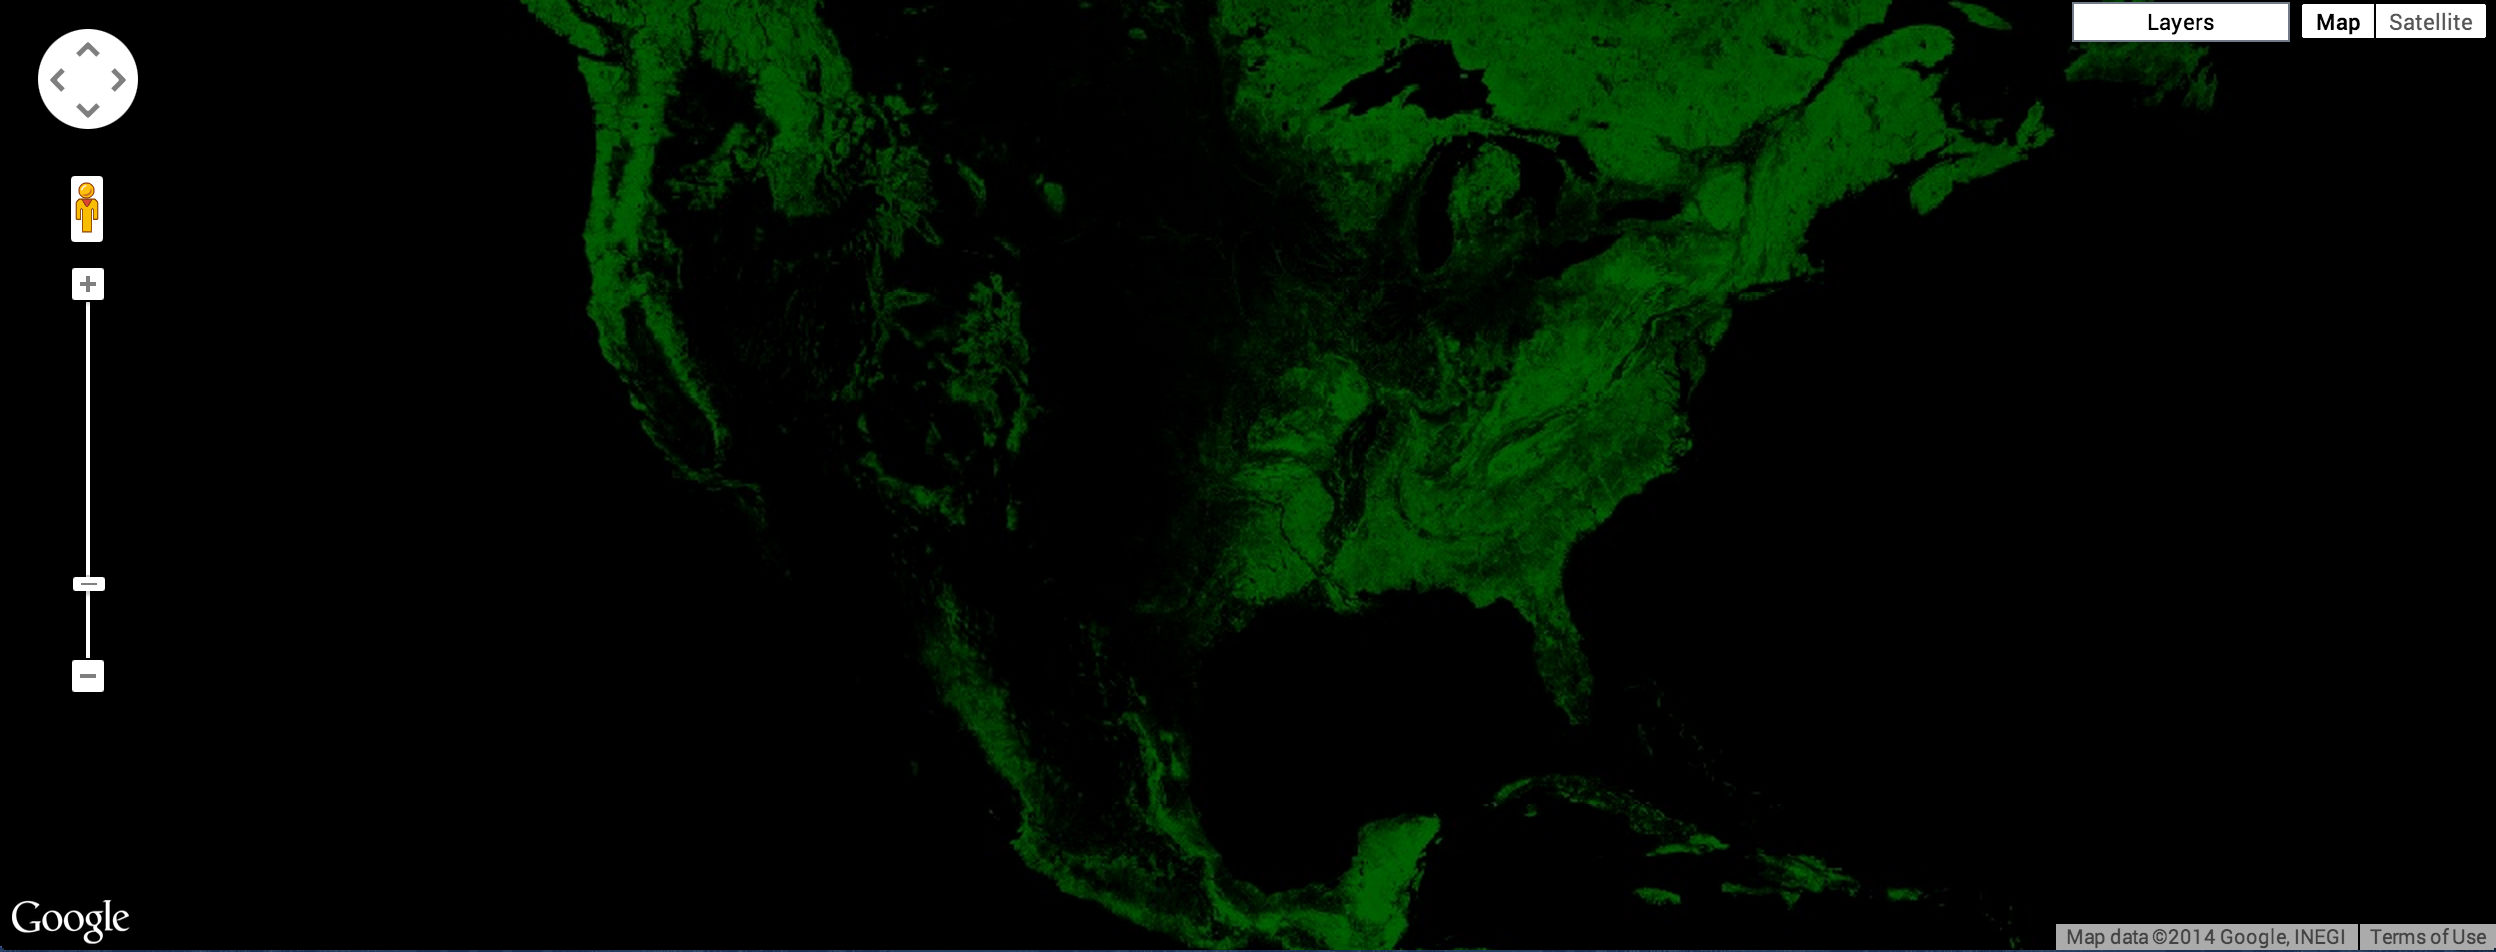 Year 2000 Tree Cover In The Us Green